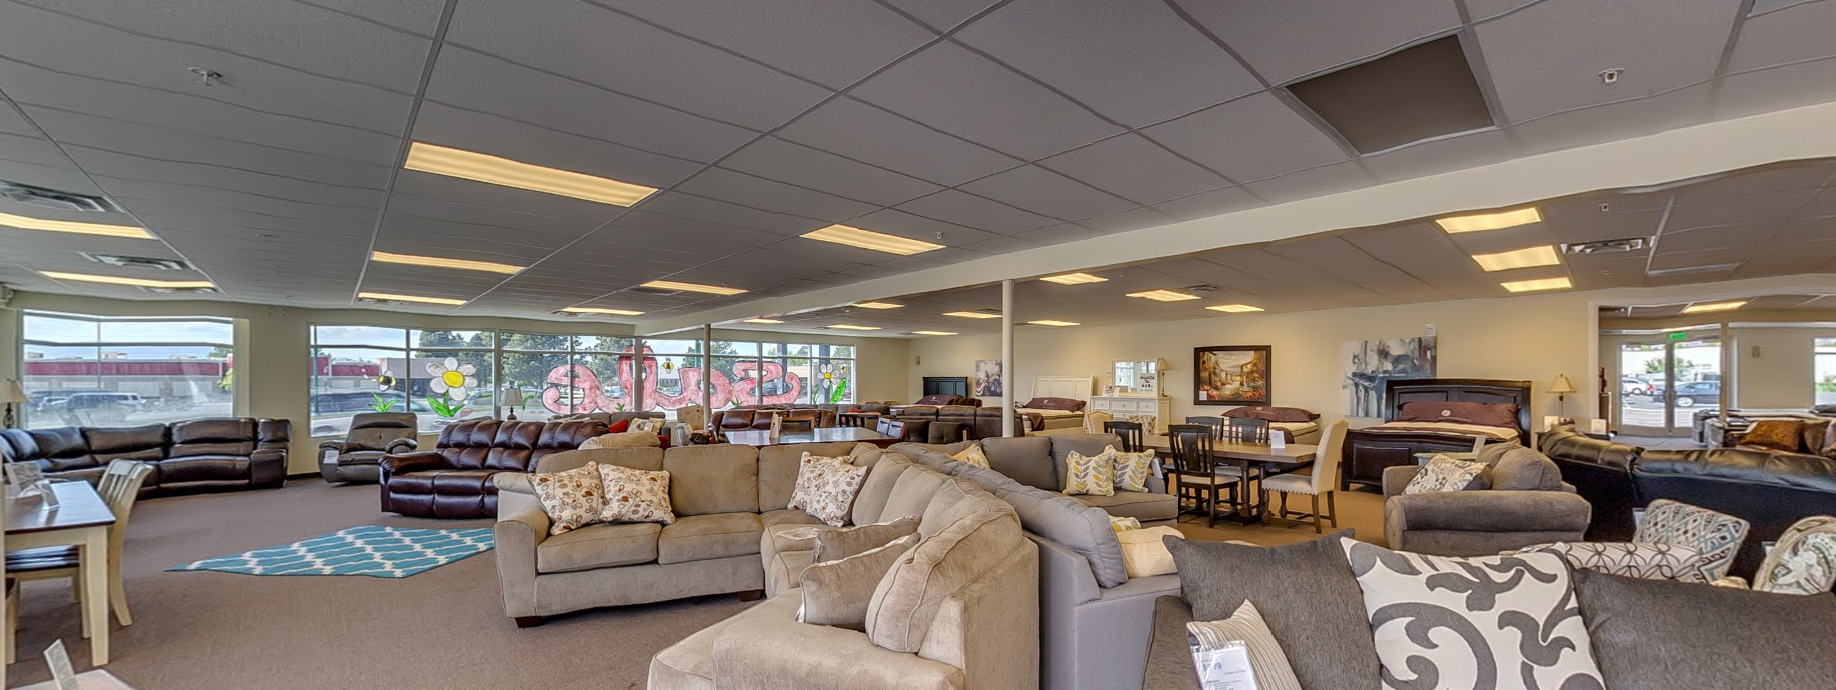 orem furniture store